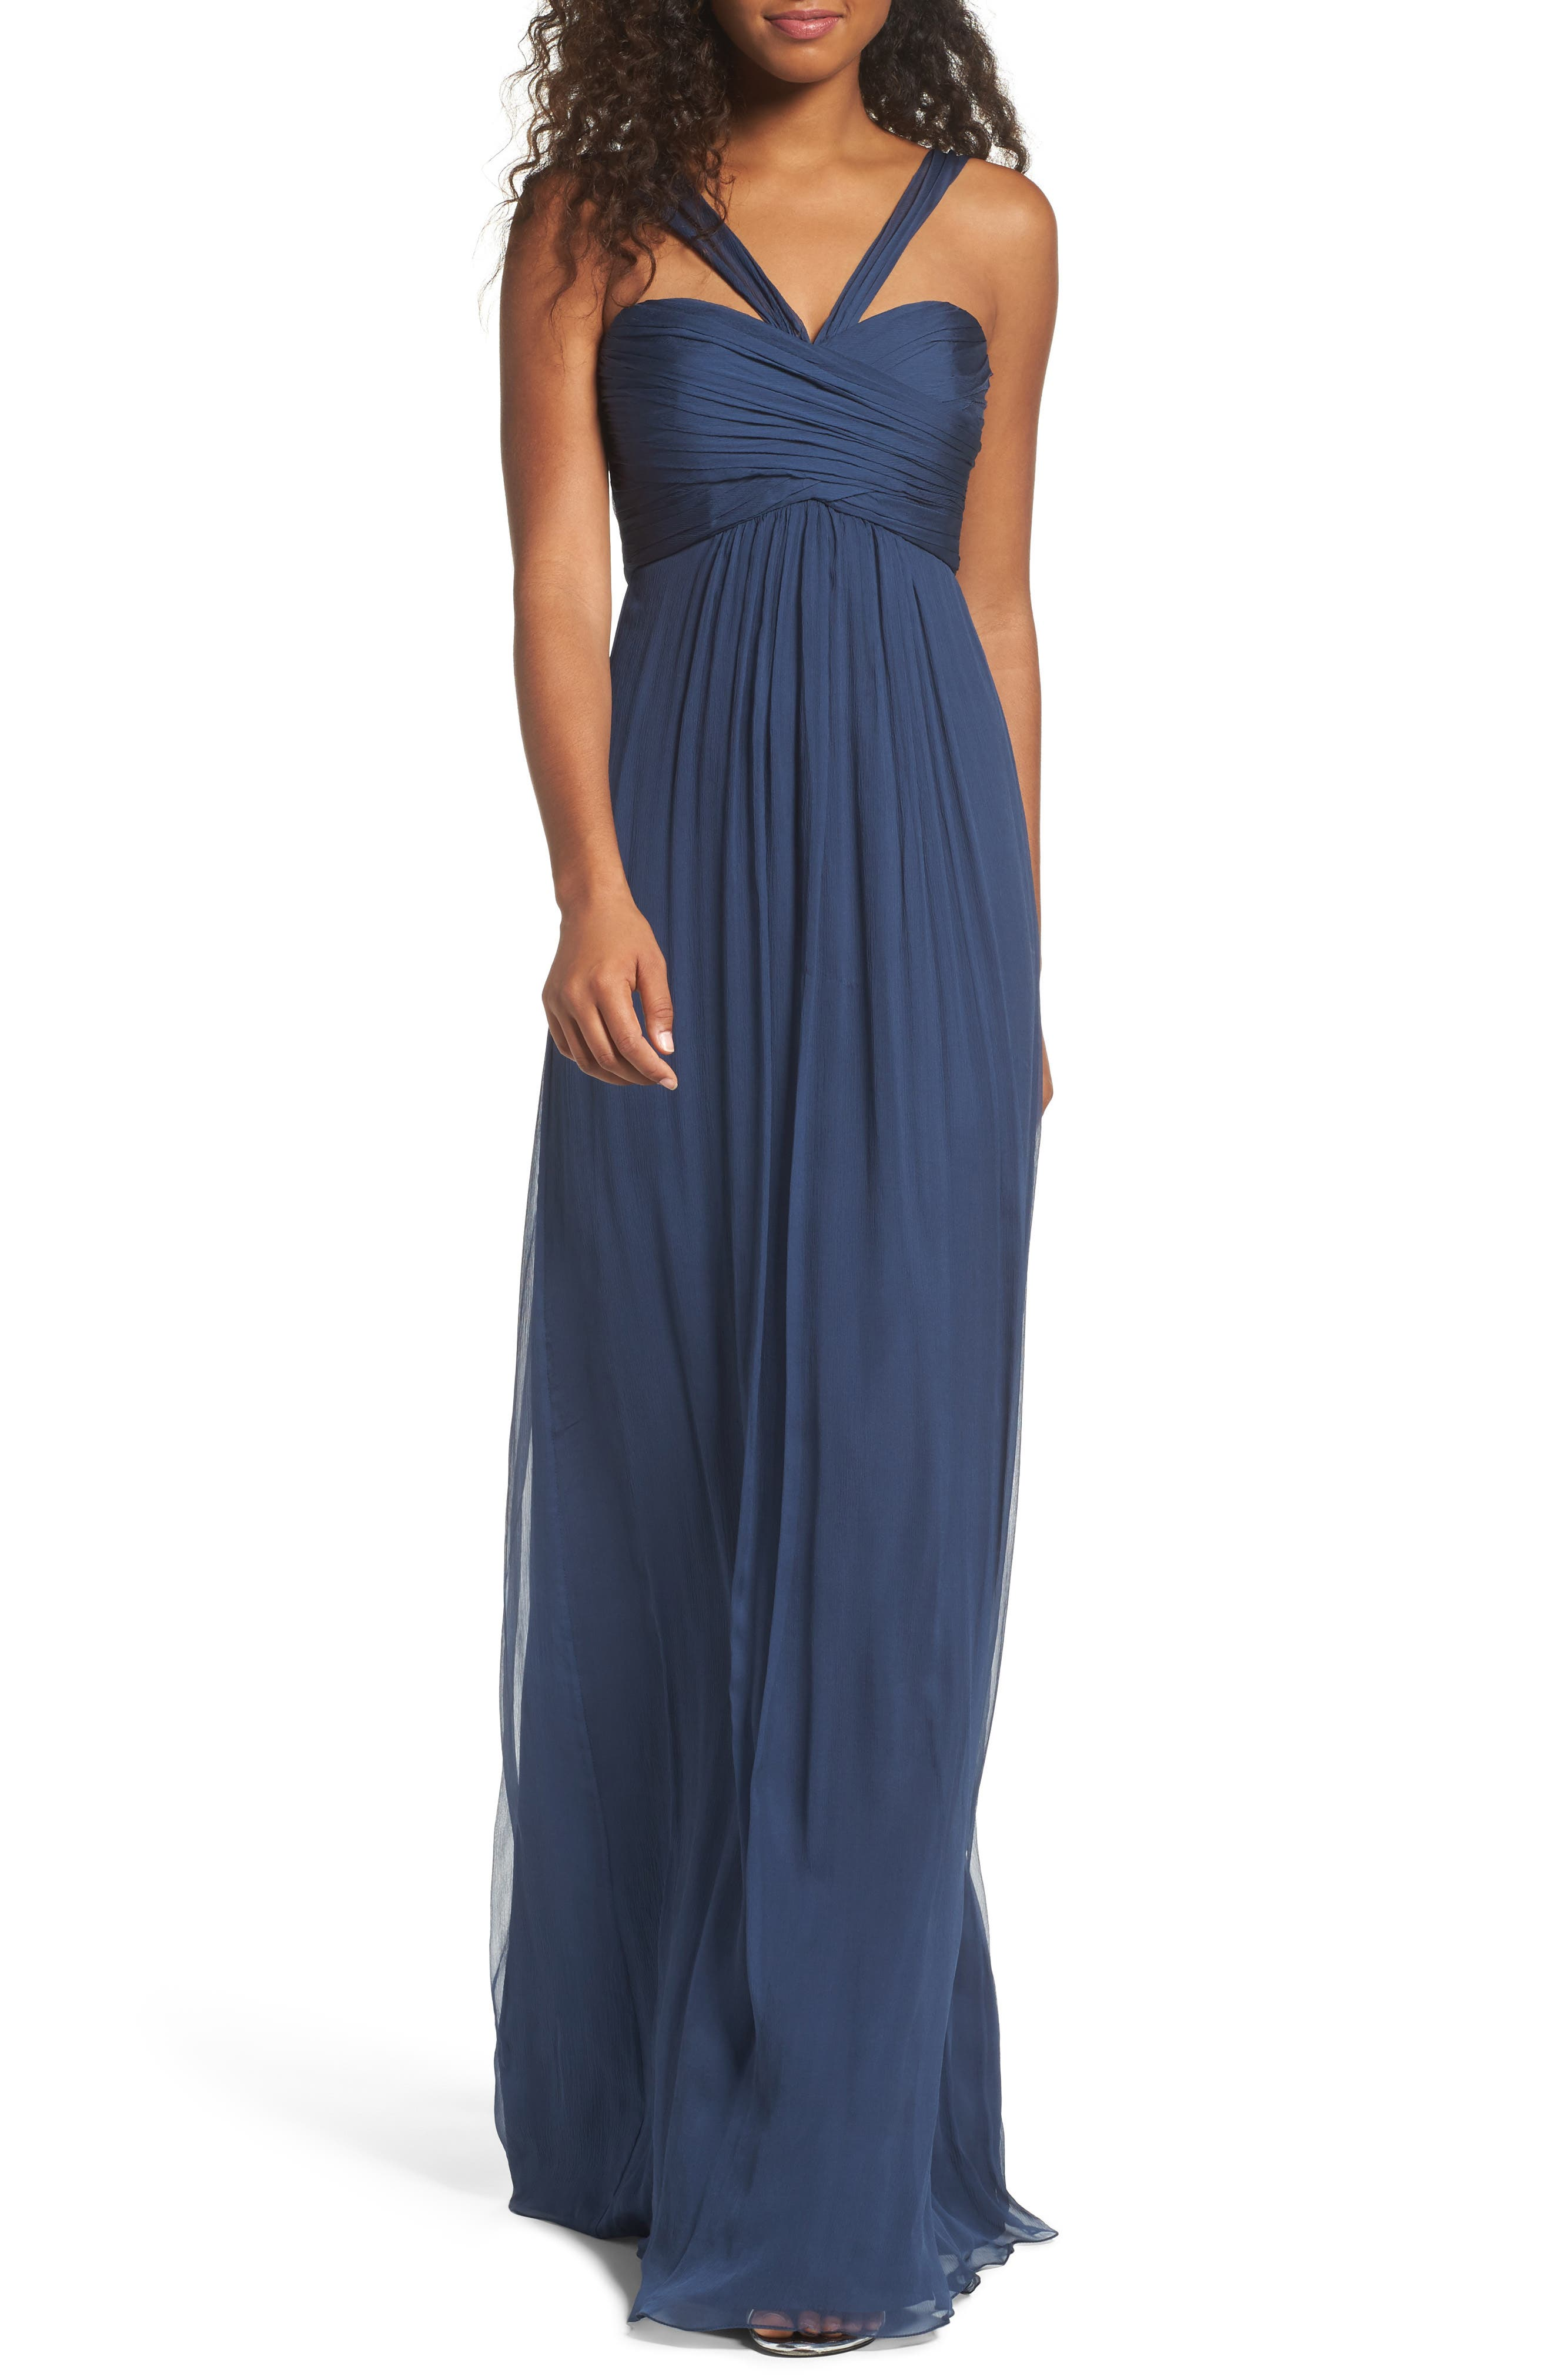 Corbin Crinkled Chiffon Empire Gown,                             Main thumbnail 2, color,